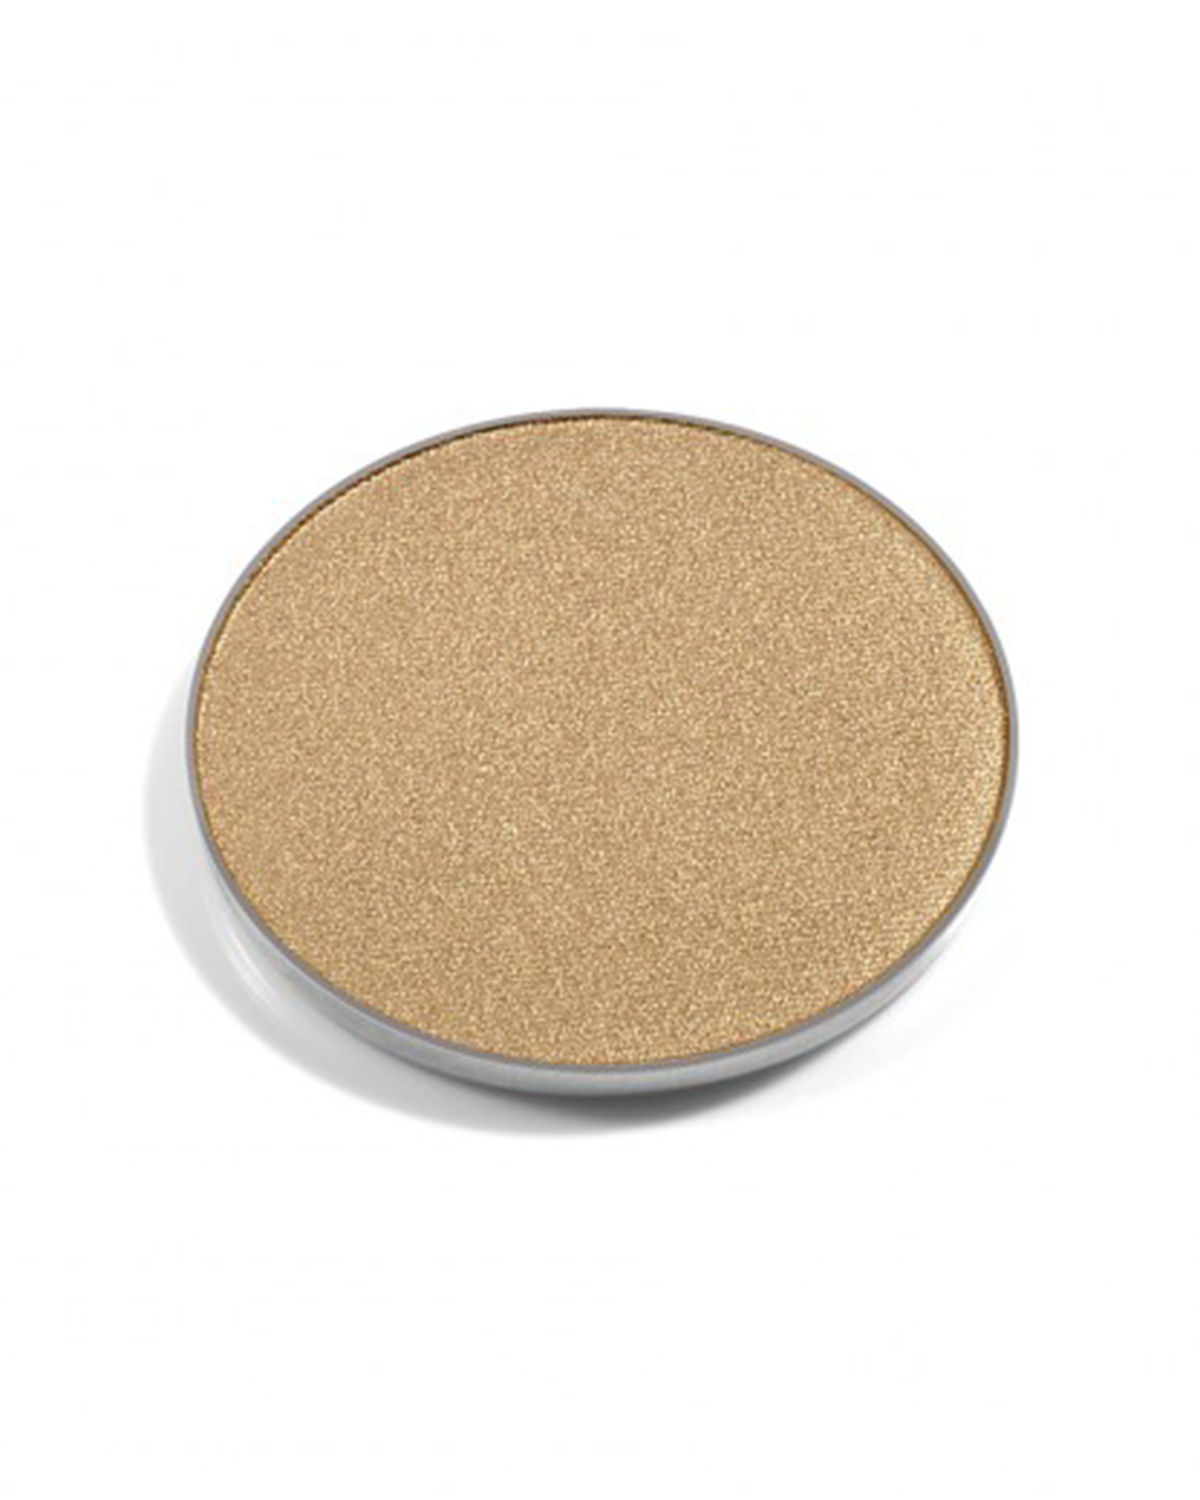 Shine Eyeshadow Palette Refill